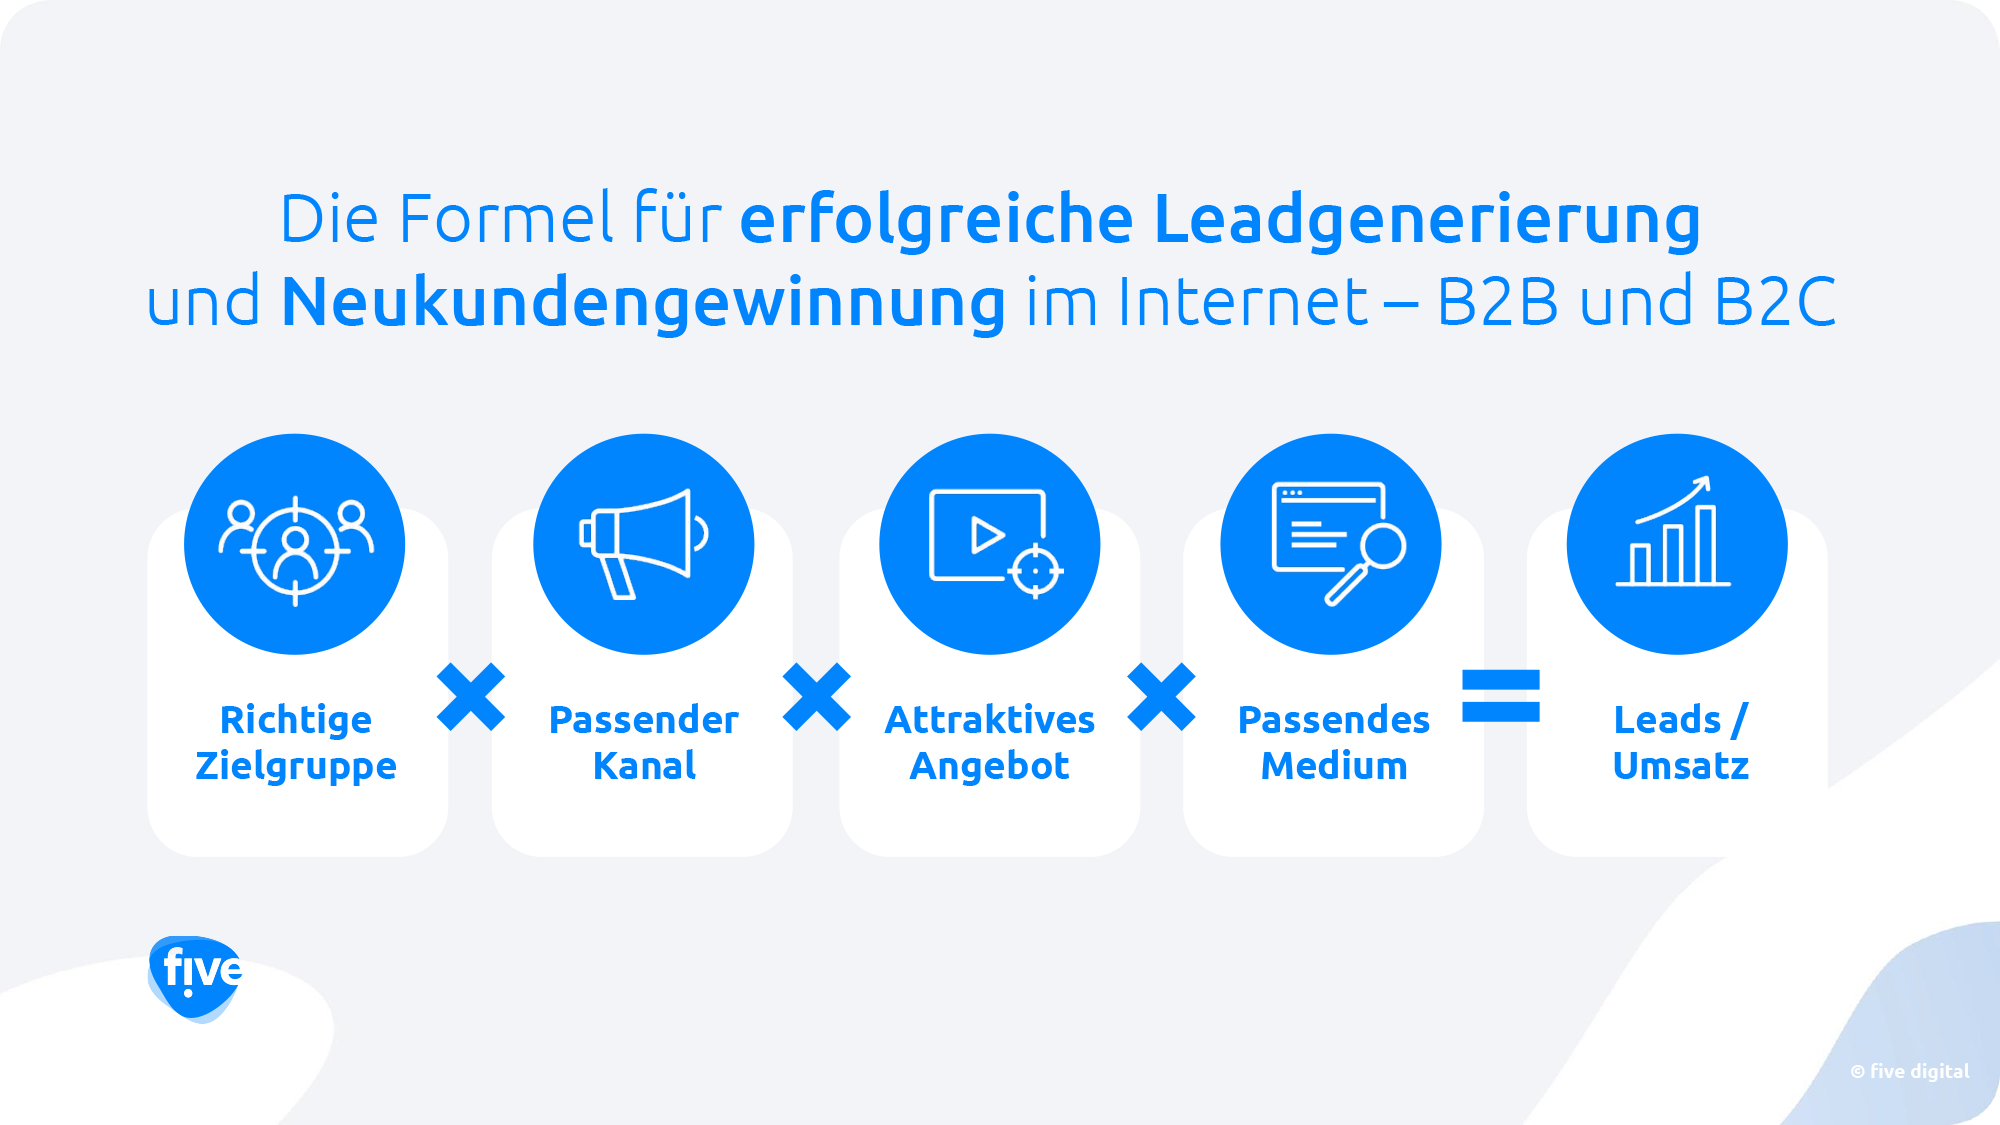 Leadgenerierung Formel_five digital